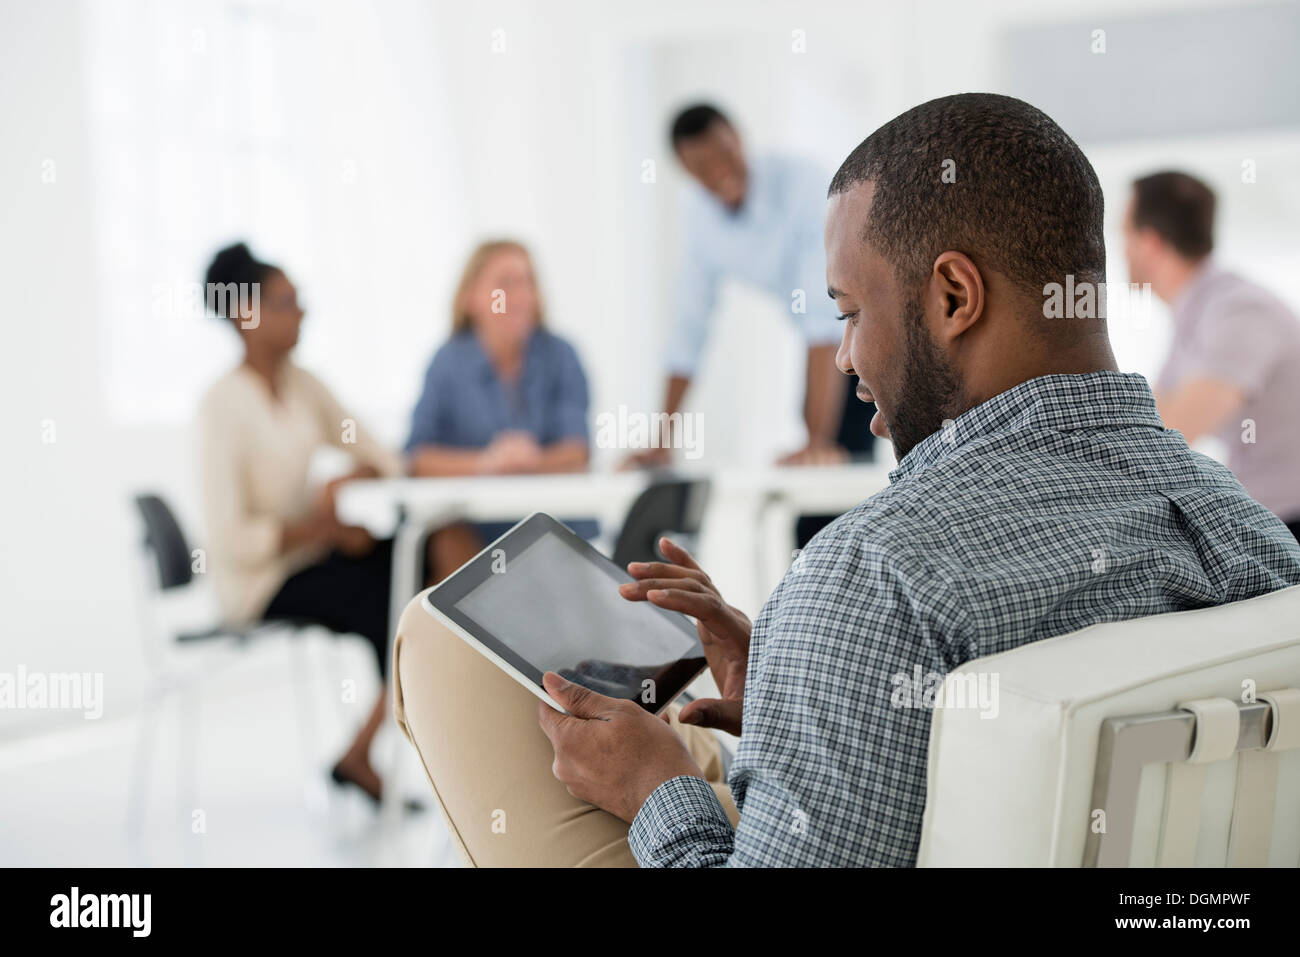 Office interior. Meeting. One person seated separately, using a tablet computer. Holding a digital tablet. - Stock Image